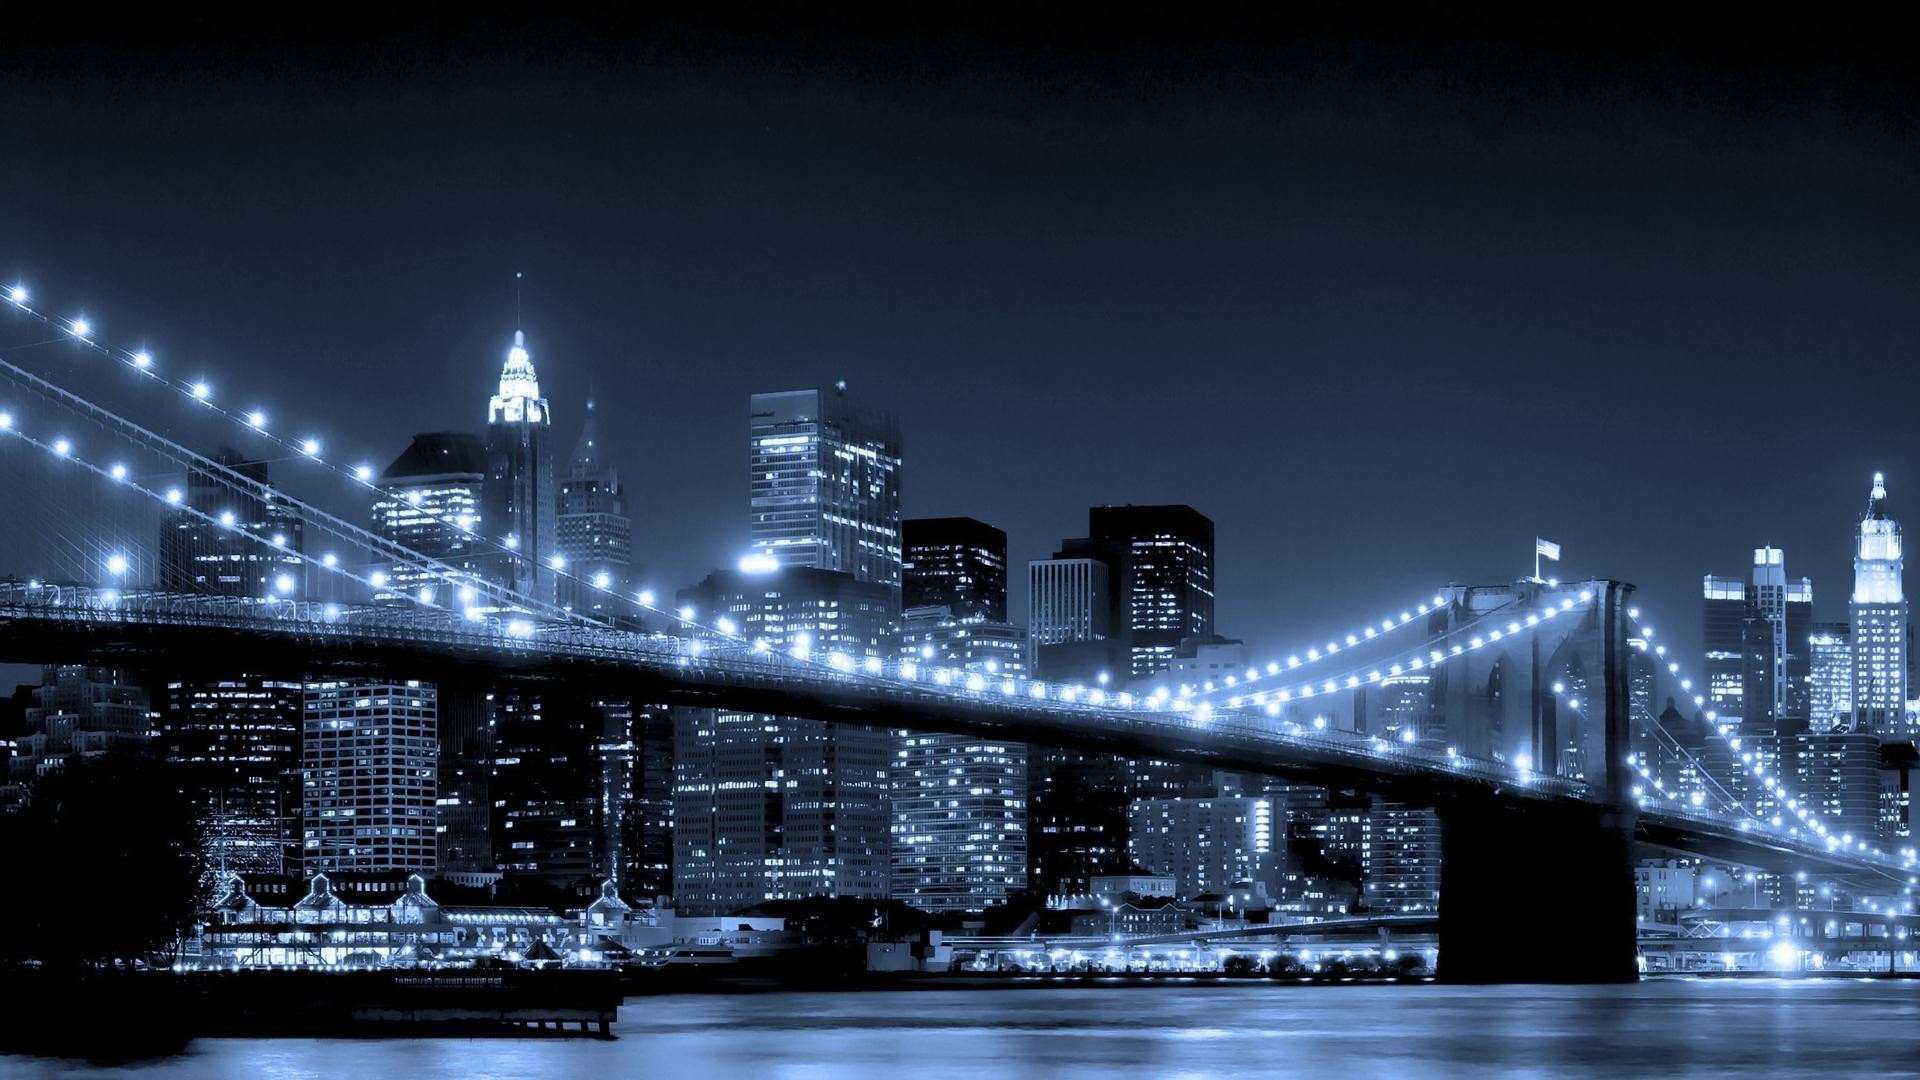 skylines lights Bridges nighttime HD Wallpaper